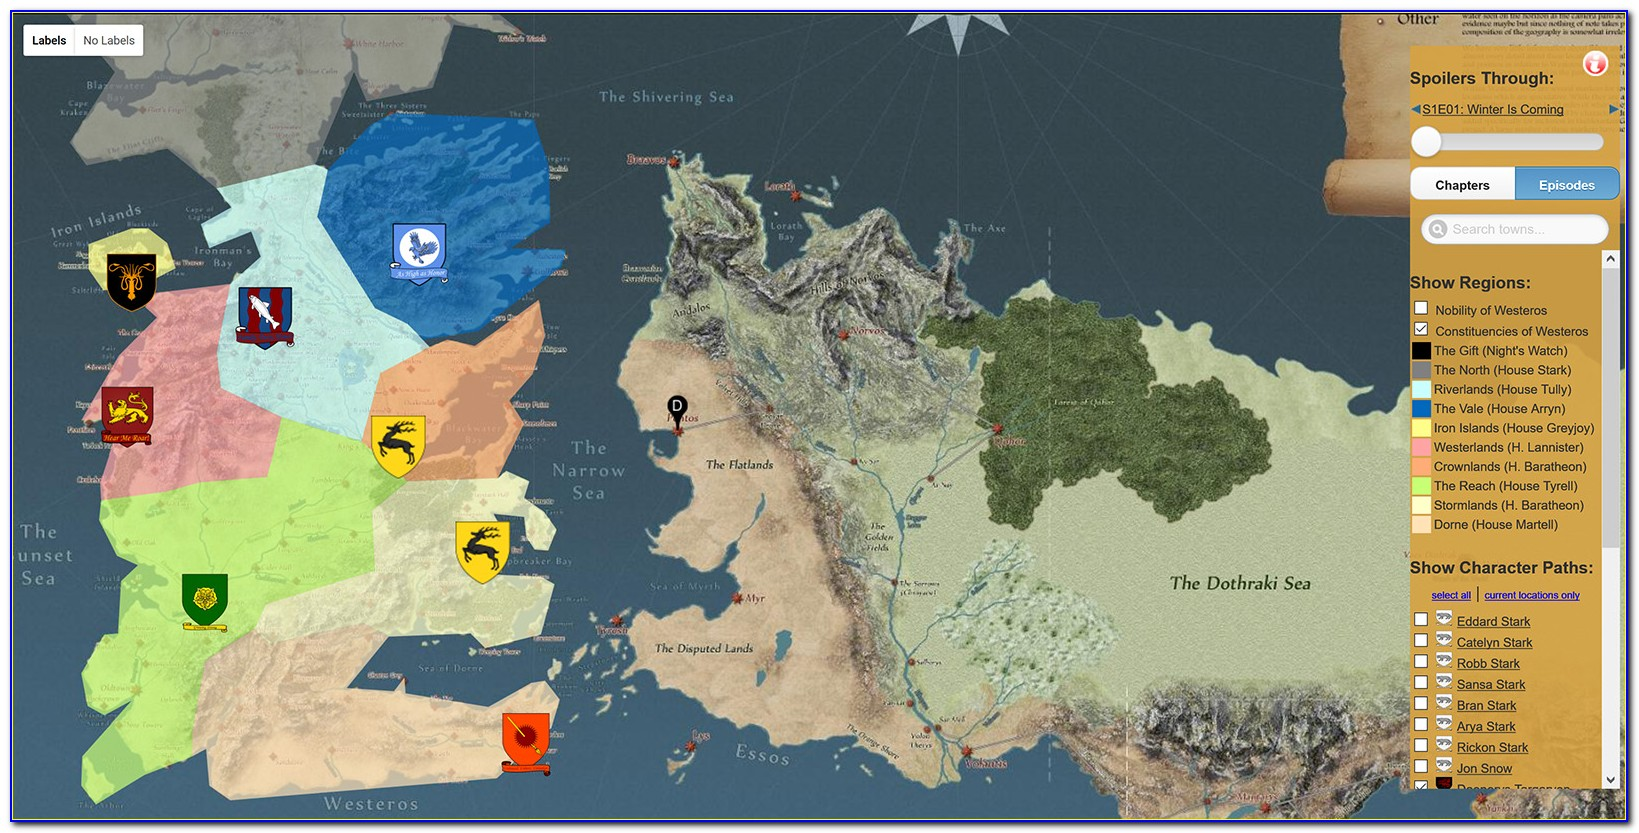 Maps Of Game Of Thrones Pdf